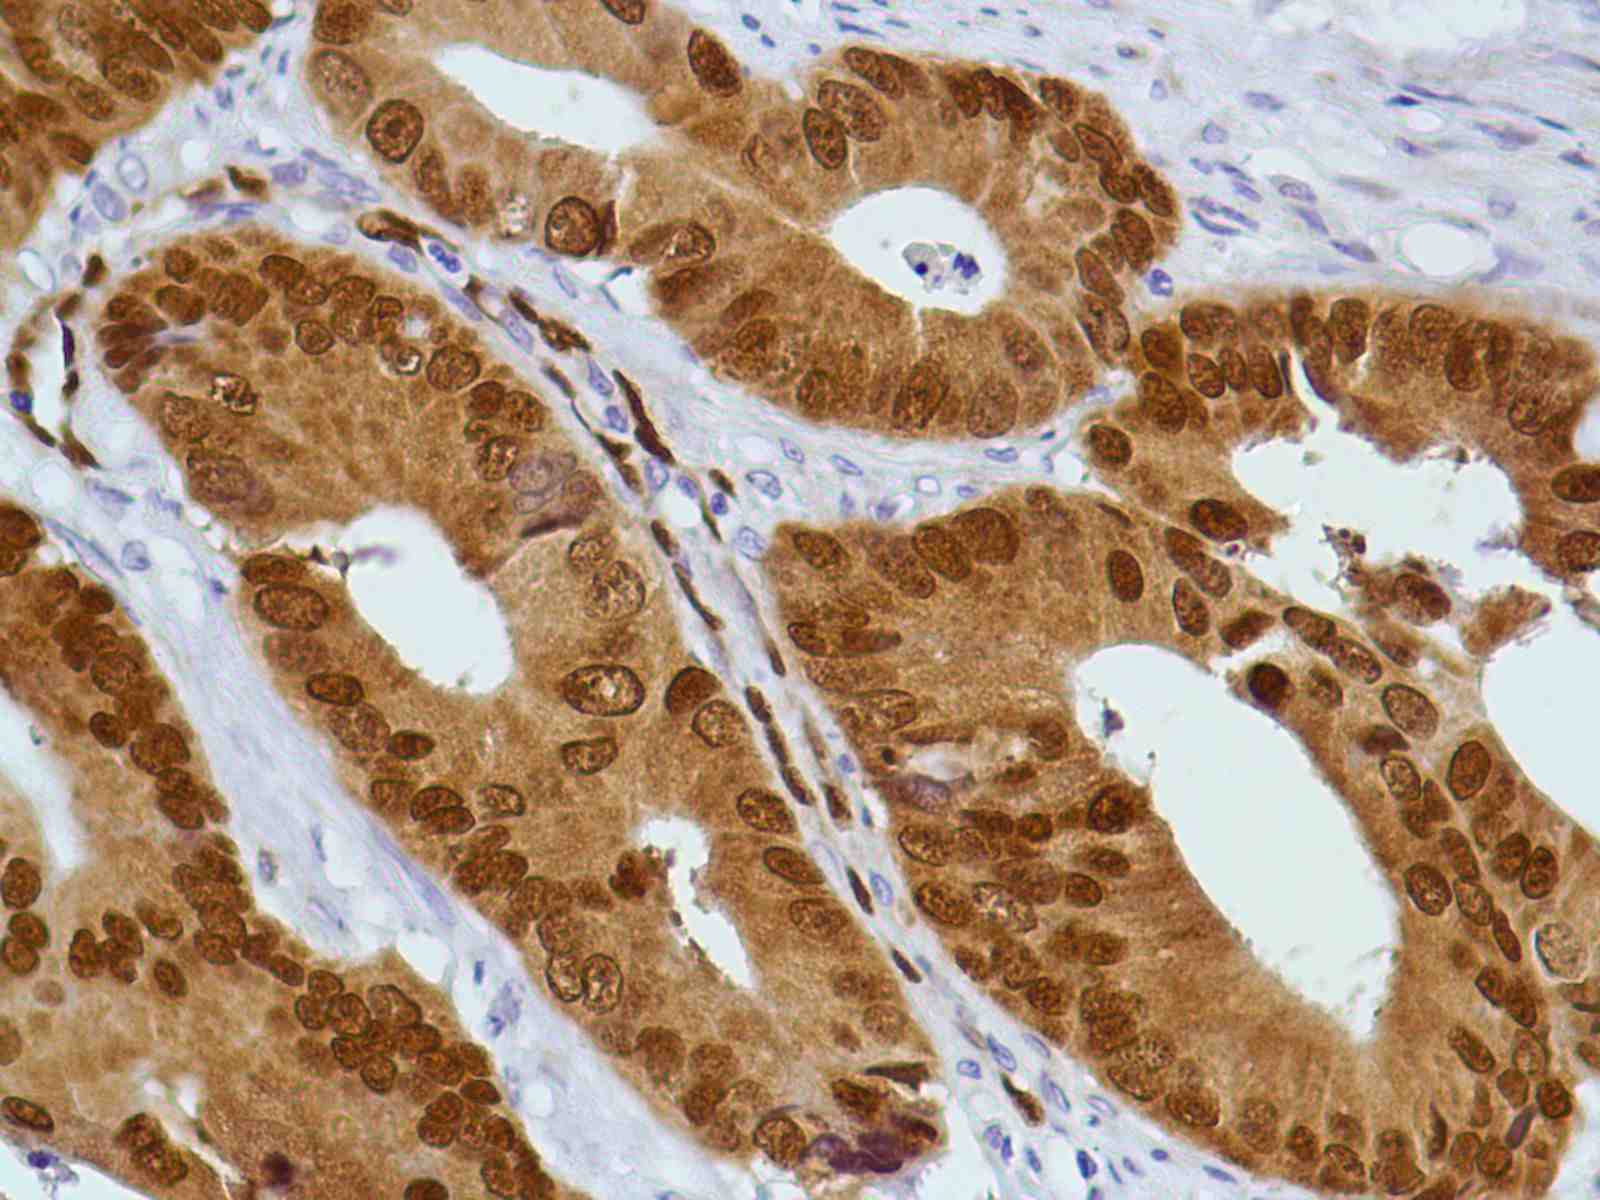 Human Colon Carcinoma stained with anti-CDX2 antibody